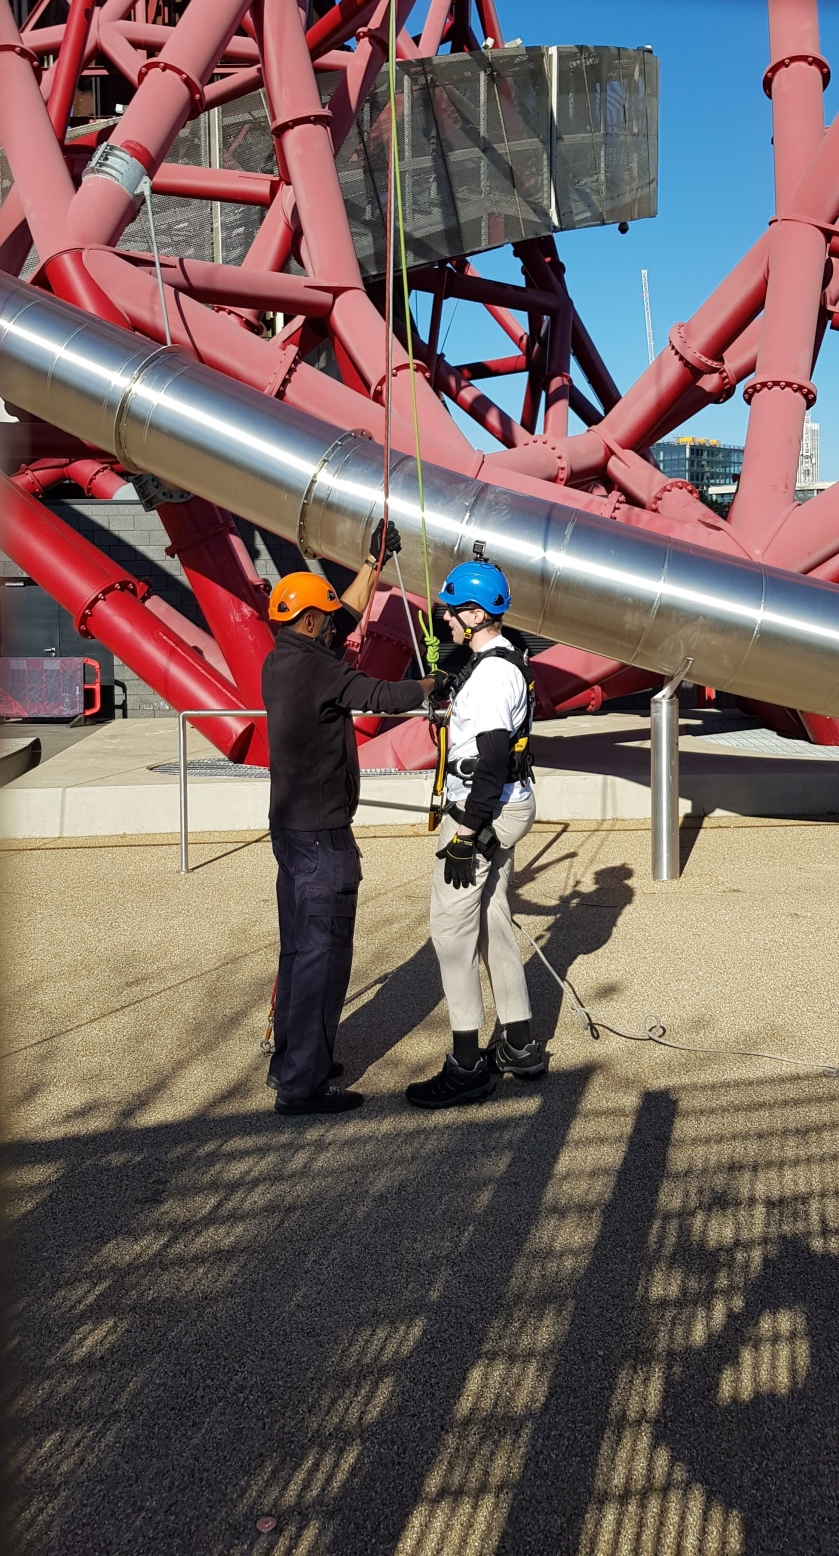 Now standing back on the ground, Glen waits as the male instructor disconnects the ropes from his harness. Part of the large metal slide around the tower can be seen curving towards the ground behind them, the end being somewhere to their right.